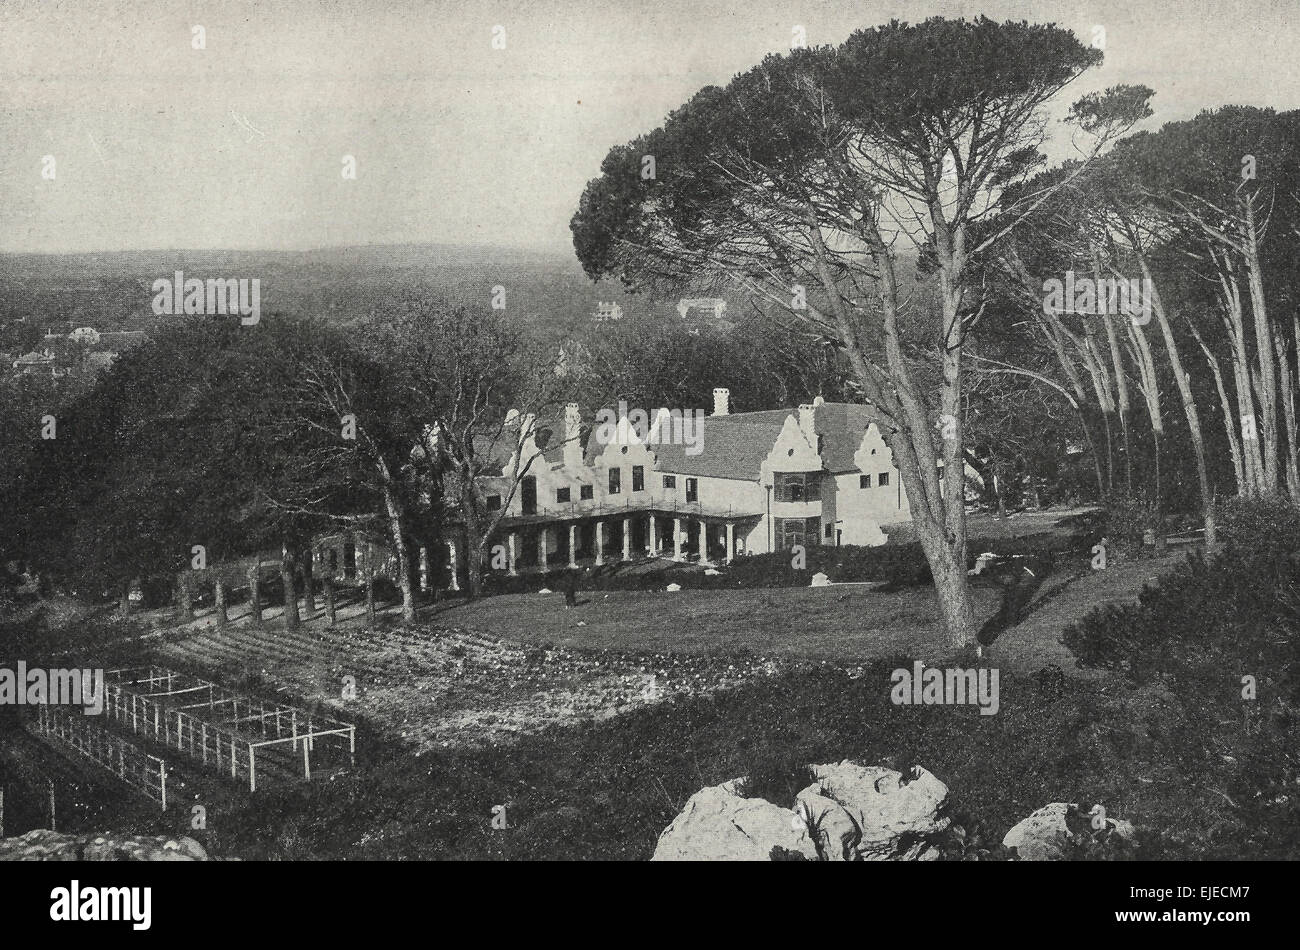 Groote Schuur - Home of Cecil Rhodes at Rondebosch, near Cape Town, South Africa, circa 1899 - Stock Image